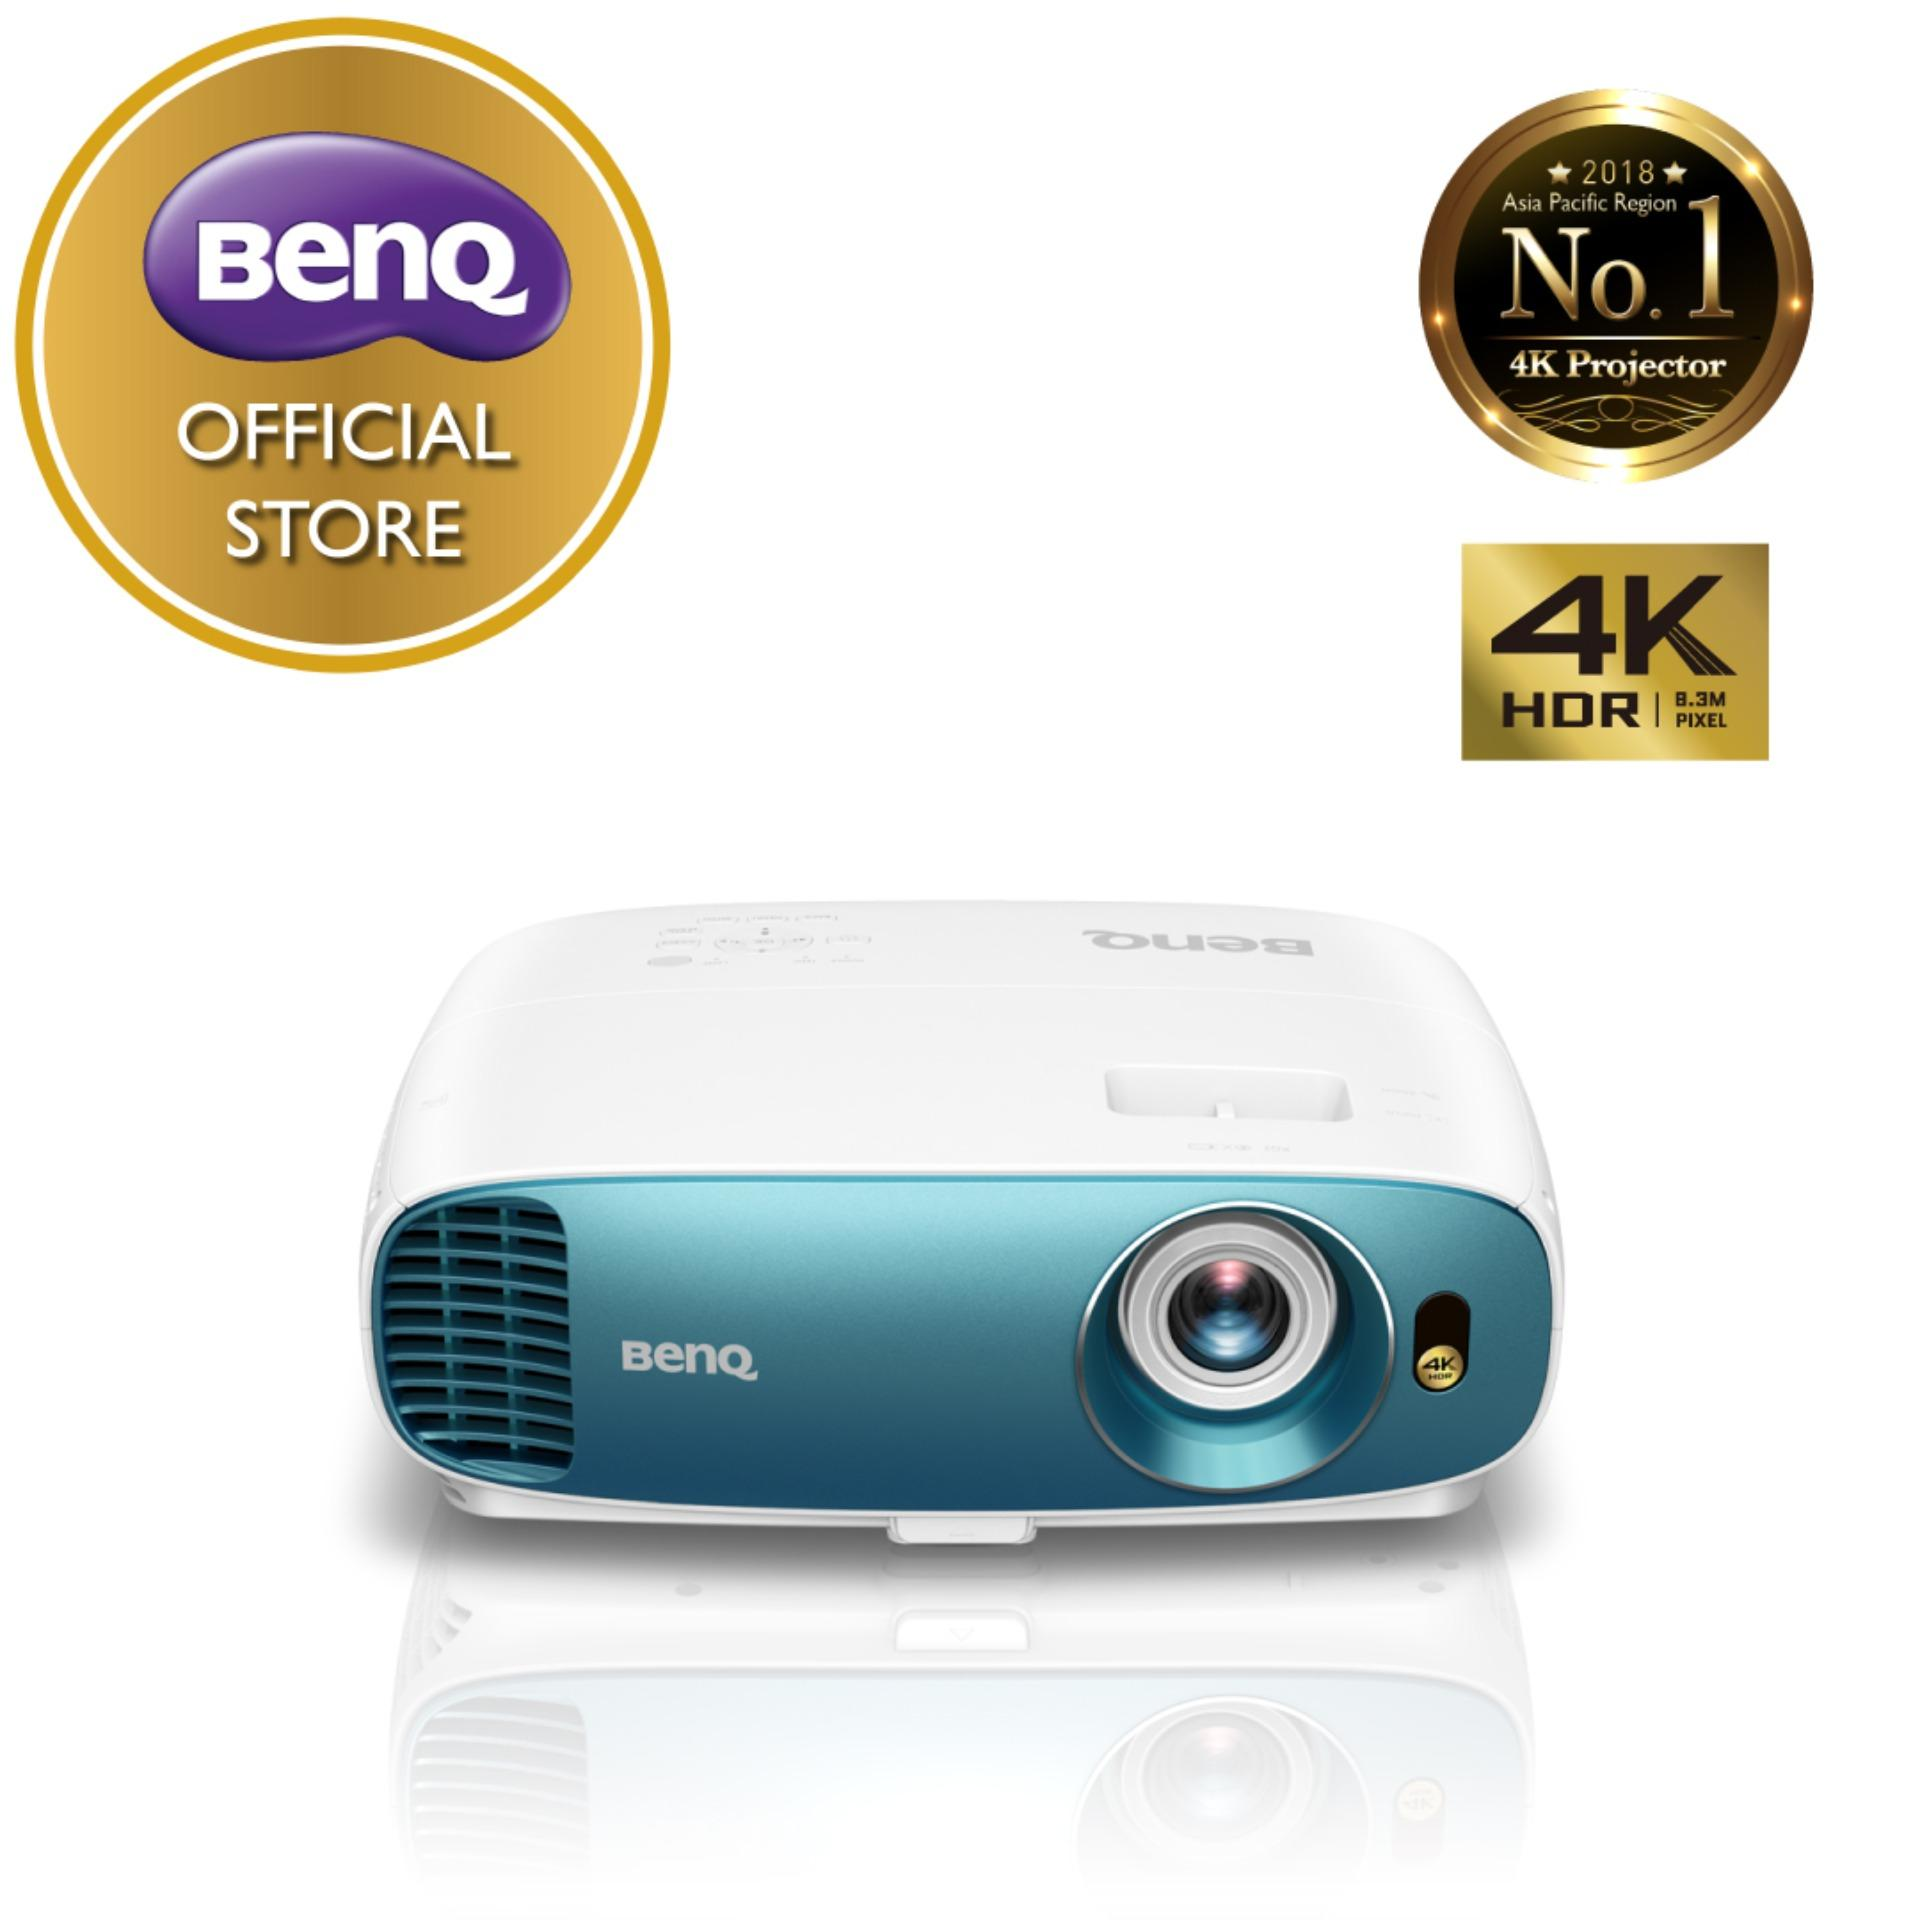 099b115b71e [NEW]BenQ TK800 4K UHD HDR Home Entertainment Projector for Sports Fans  (Ready